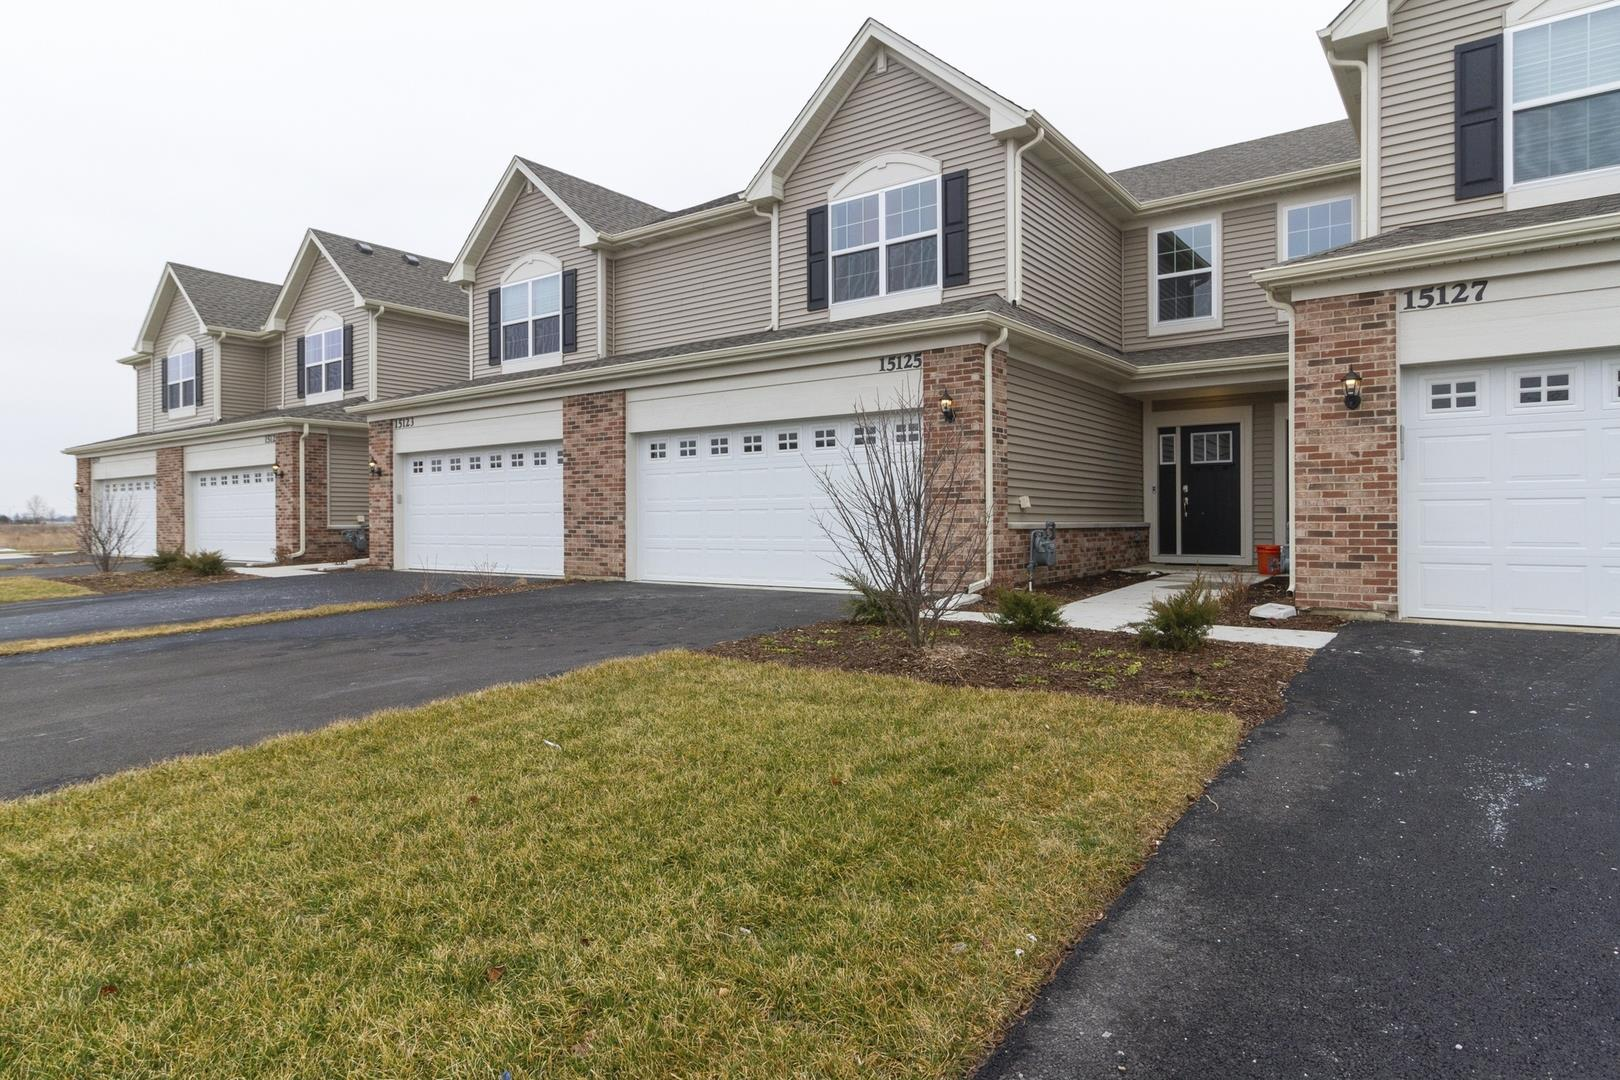 15032 W Quincy Circle, Manhattan, IL 60442 - #: 11084163